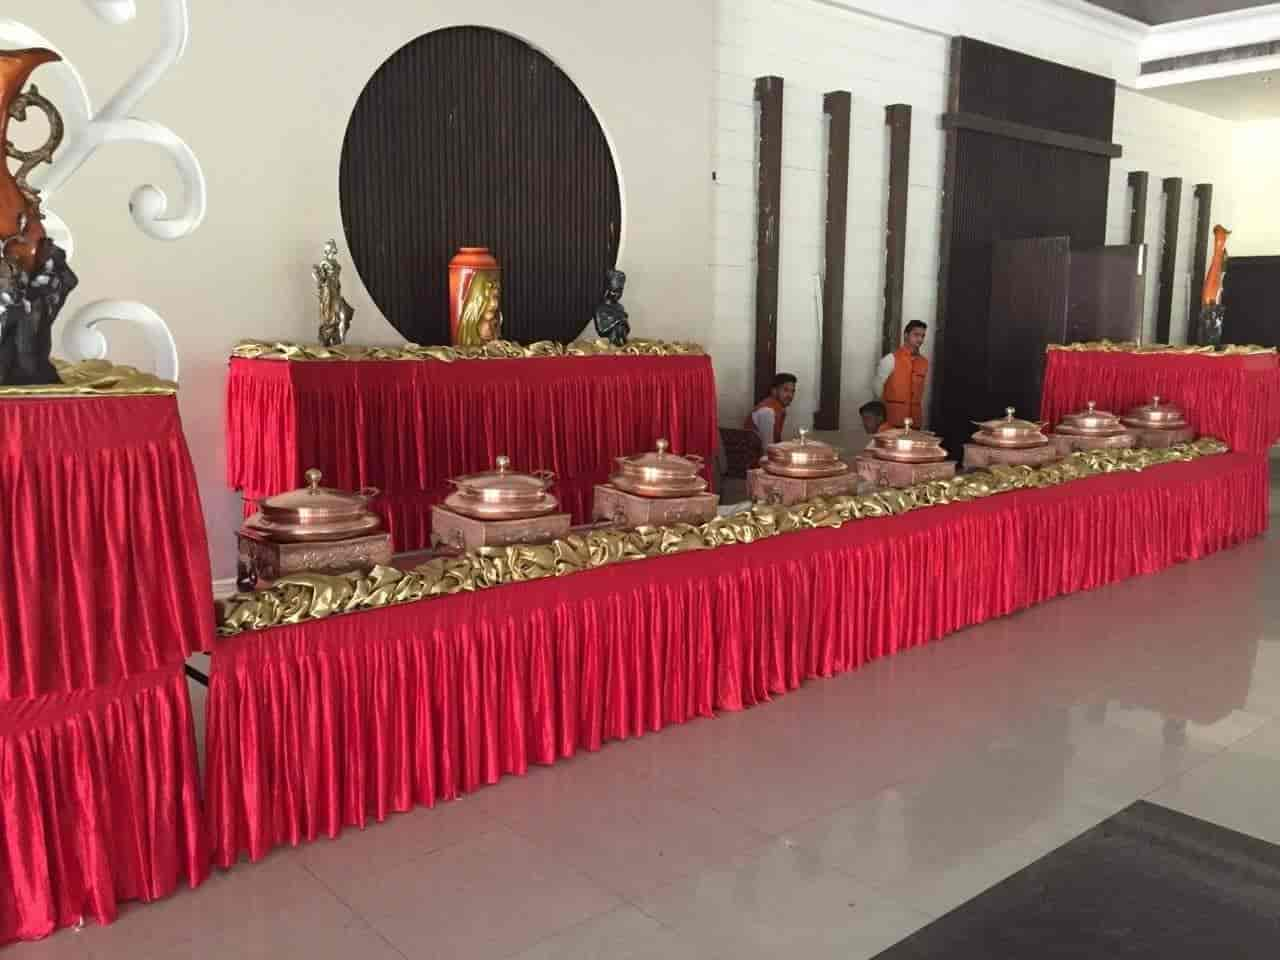 alfa decoration office party decorations decorating ideas ue alfa img showing office luncheon. Black Bedroom Furniture Sets. Home Design Ideas